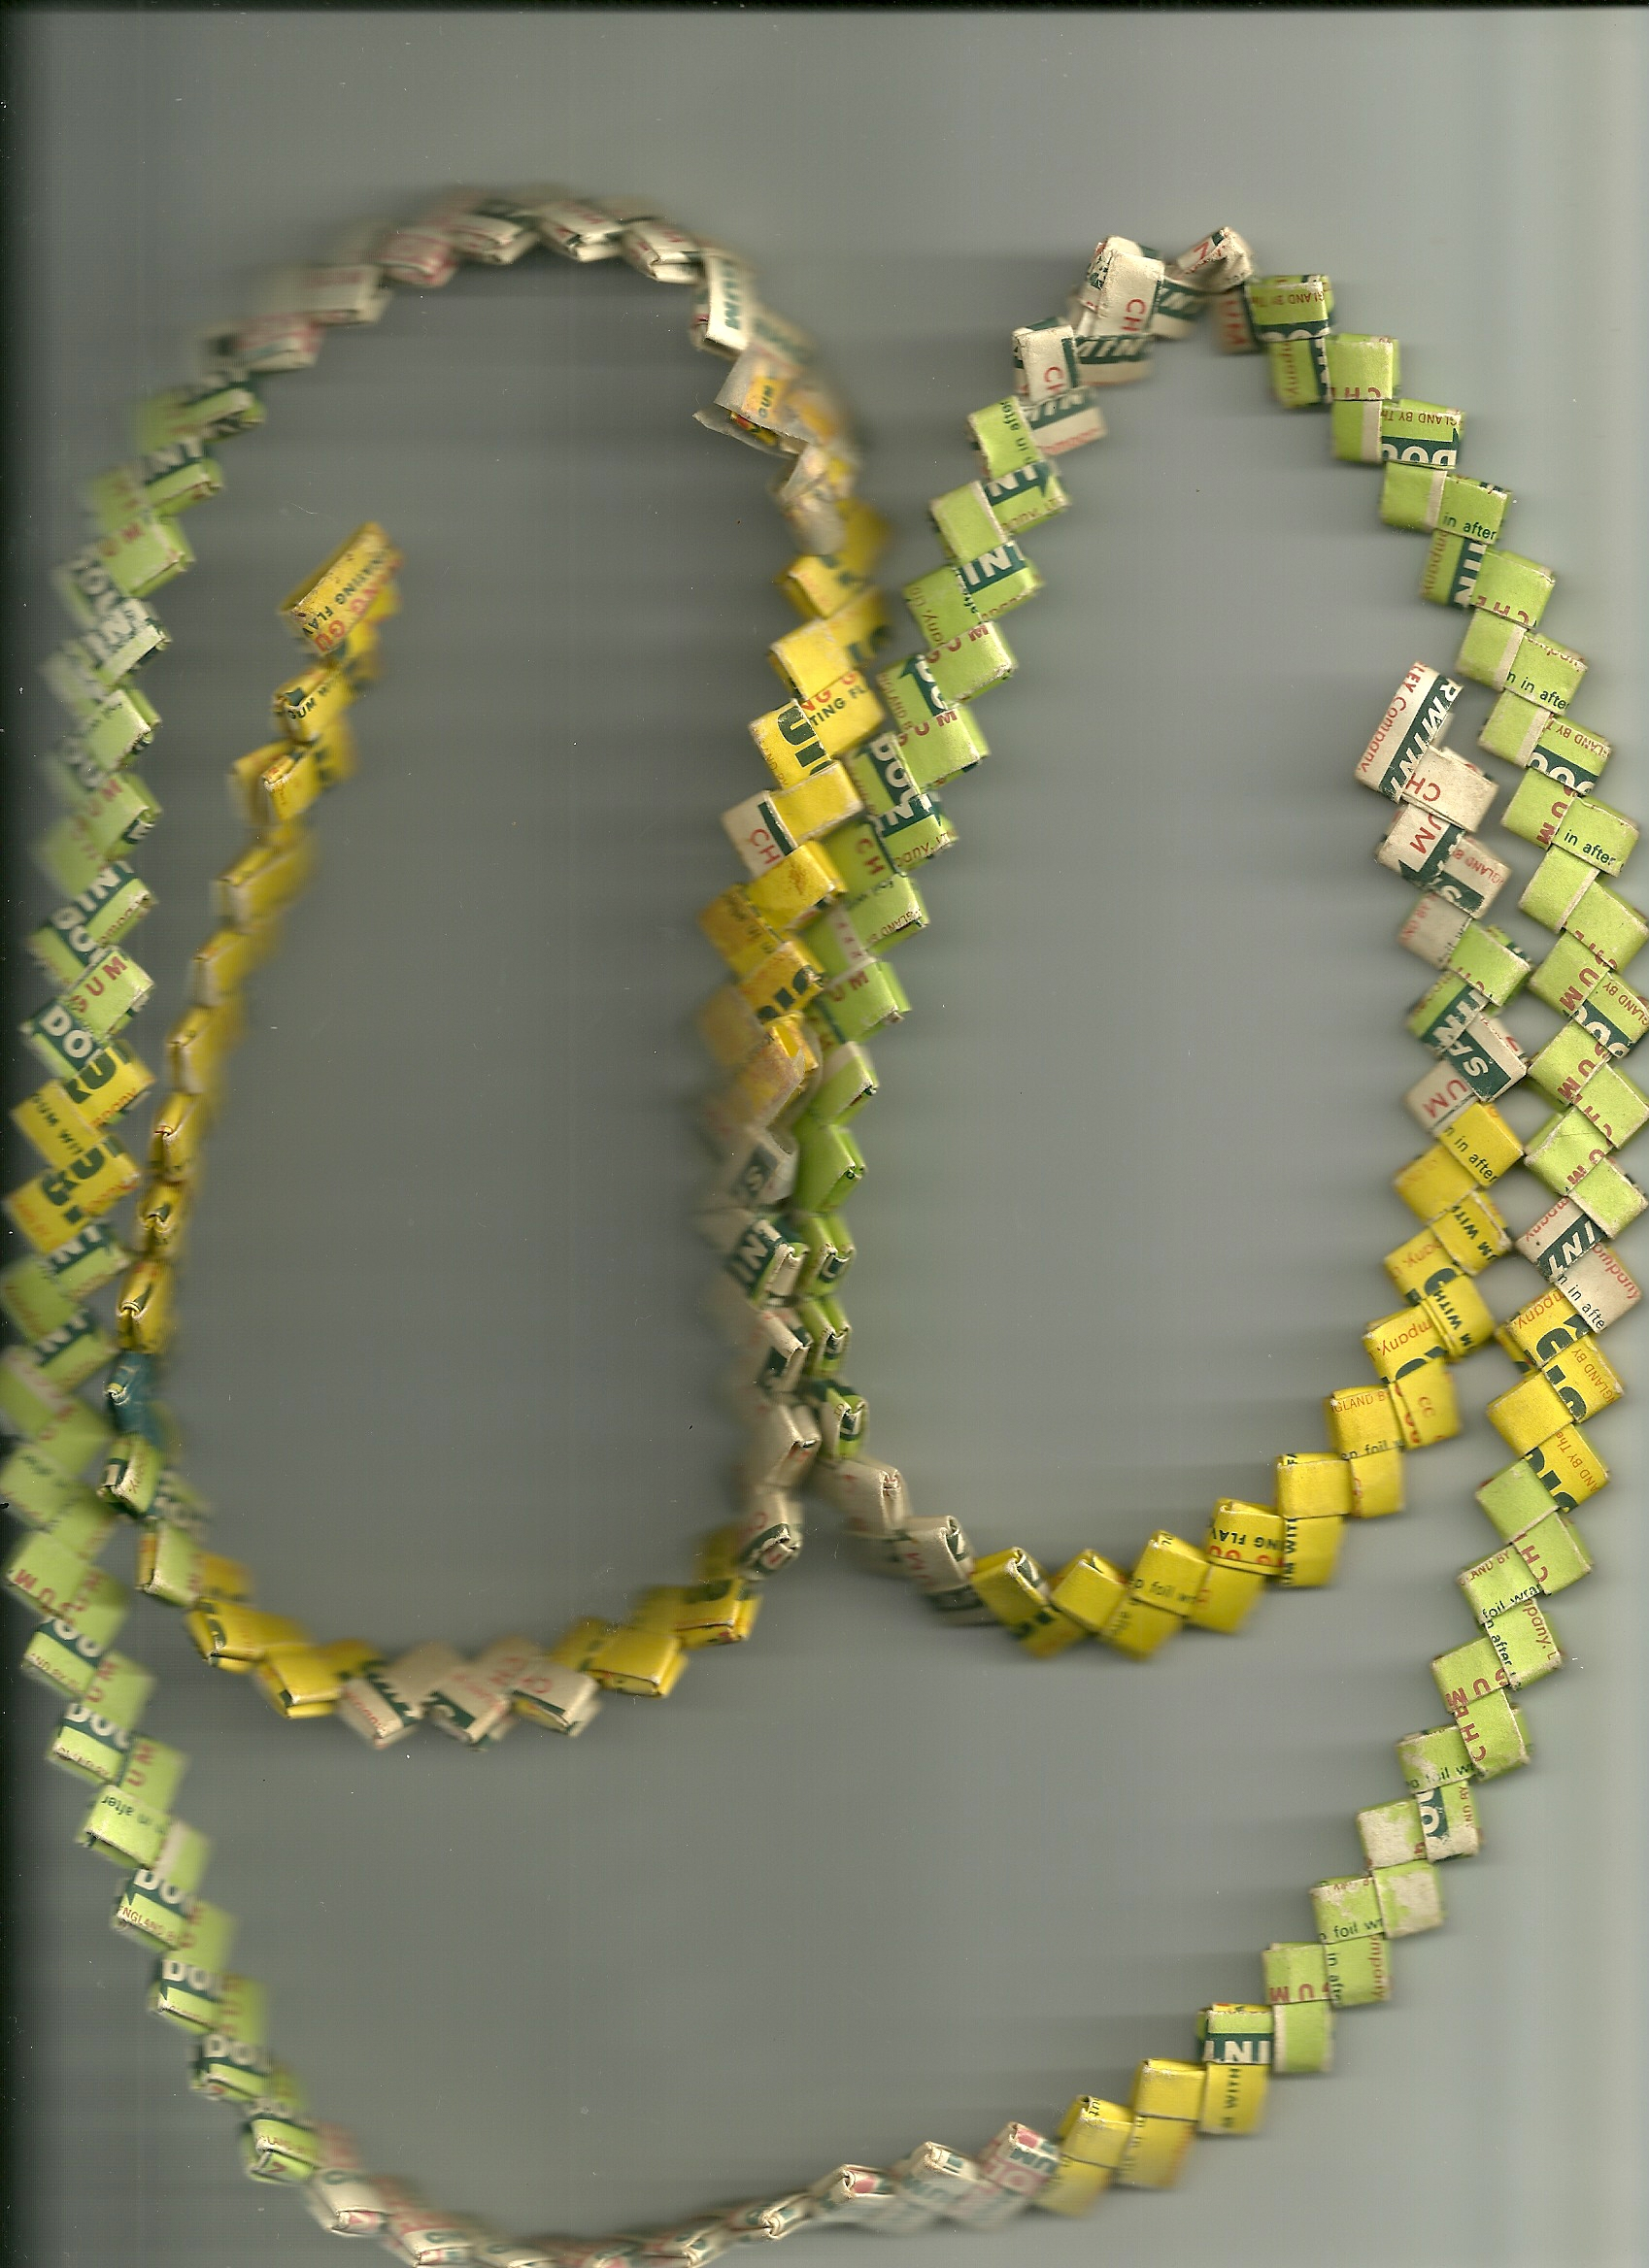 A neatly folded chain of chewing gum wrappers forming a 'love chain'